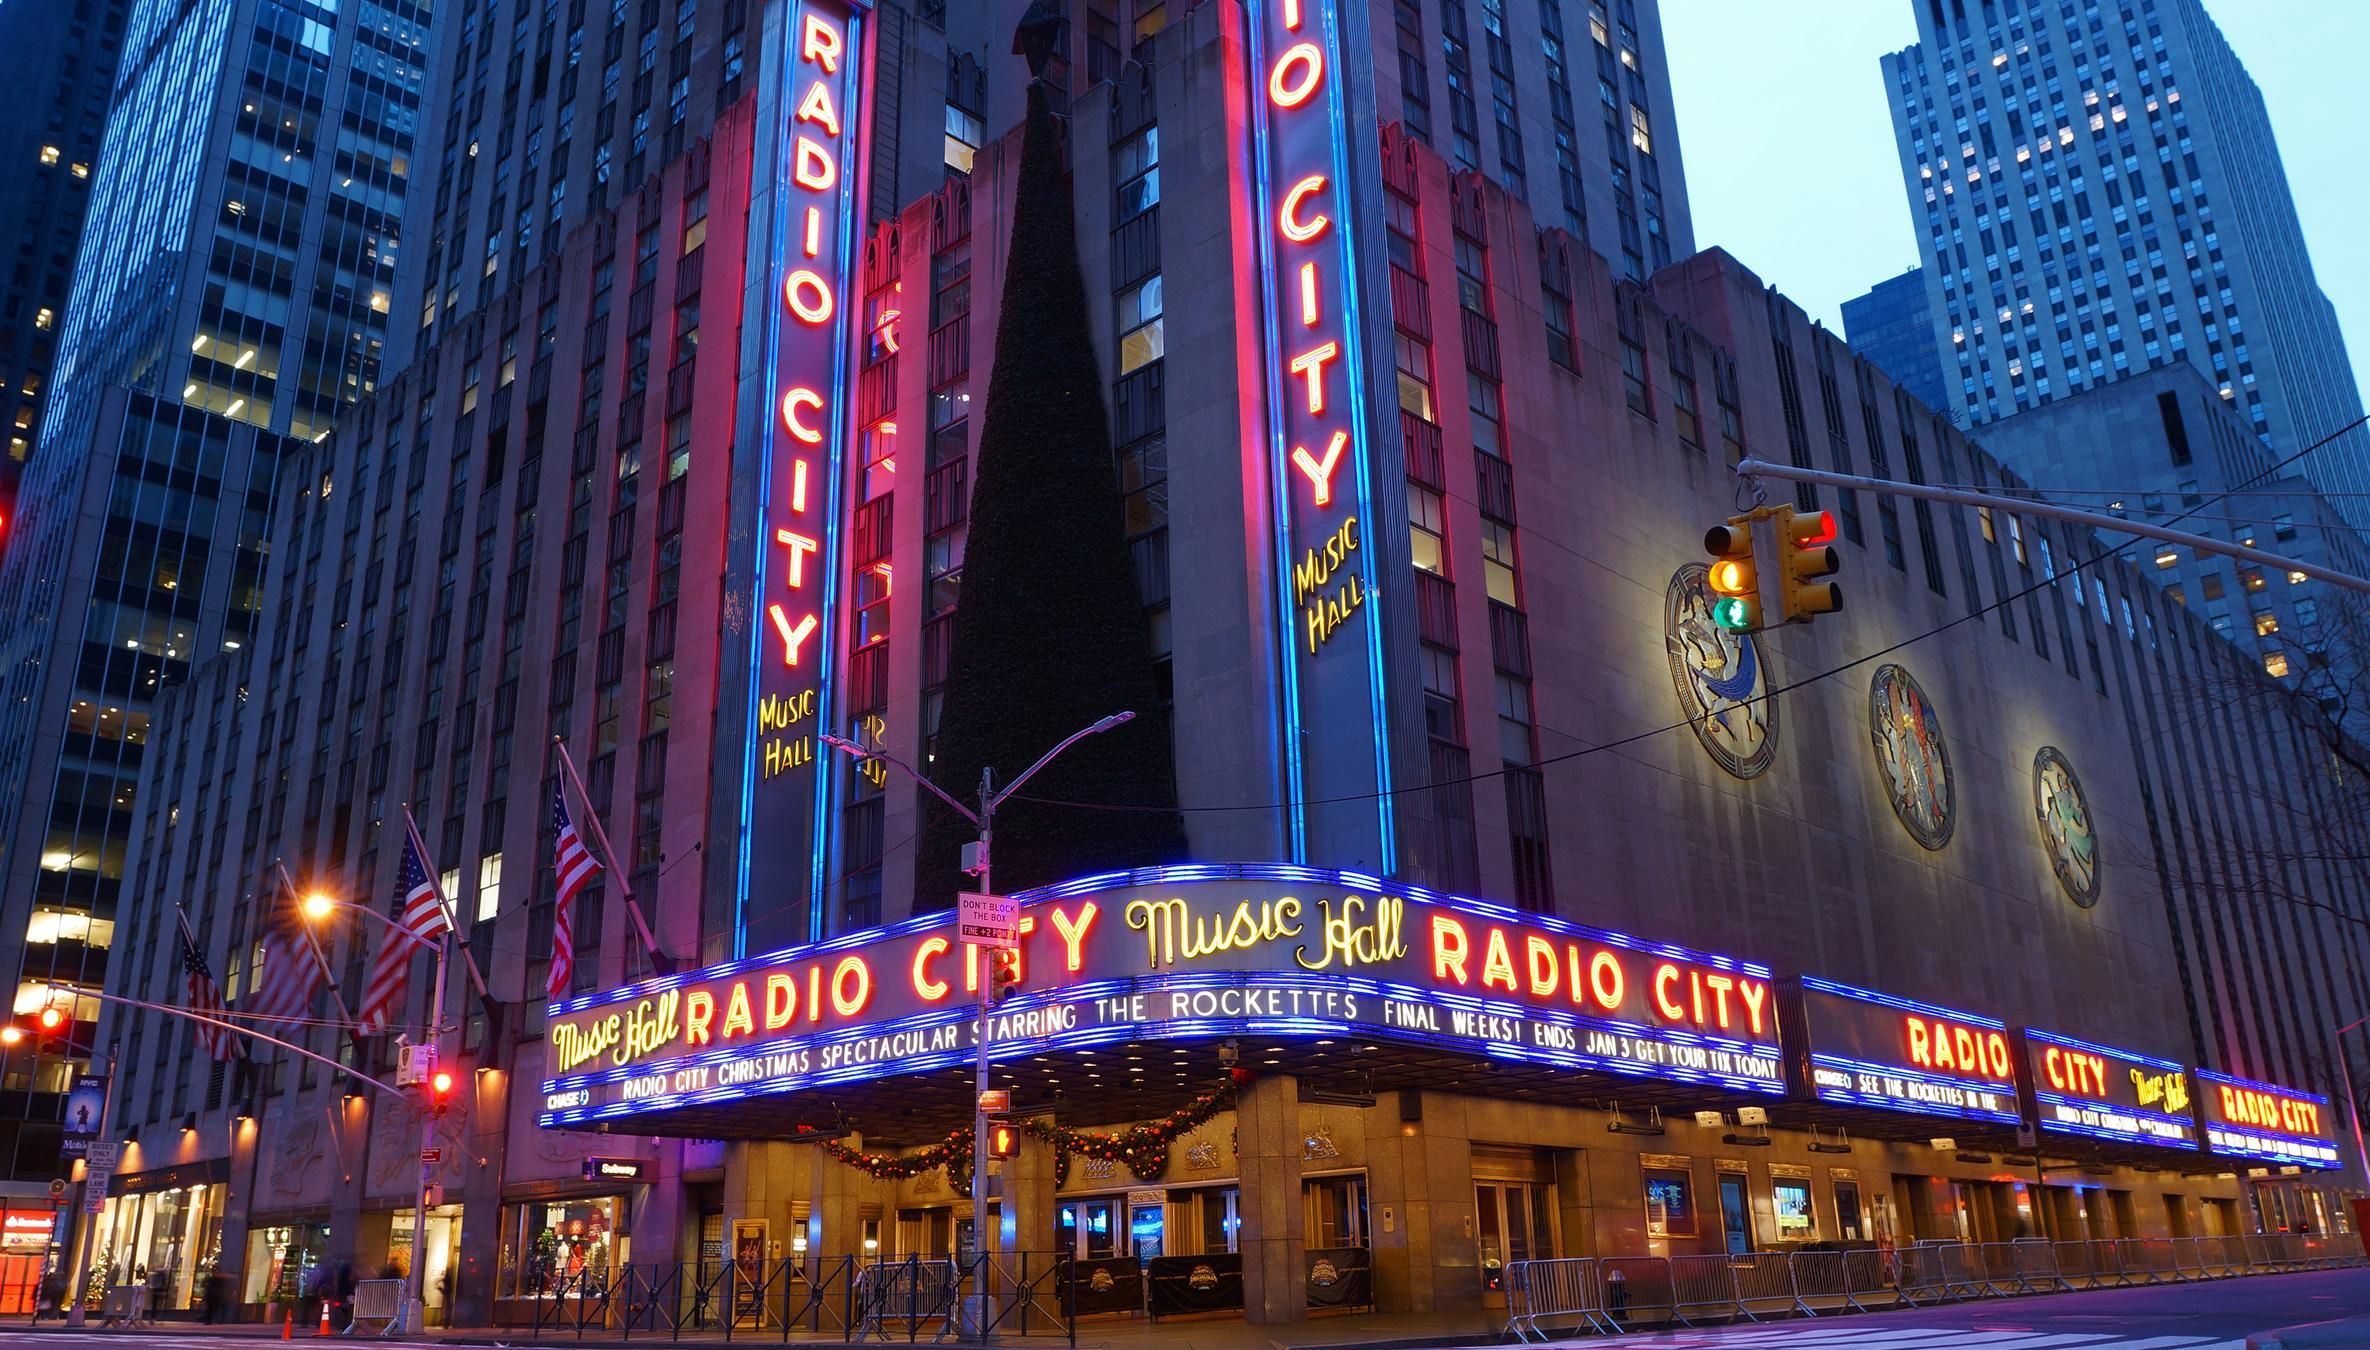 Radio City Christmas Spectacular 2021 Auditions Now Casting Work As An Ambassador For The Radio City Christmas Spectacular 3 More Gigs